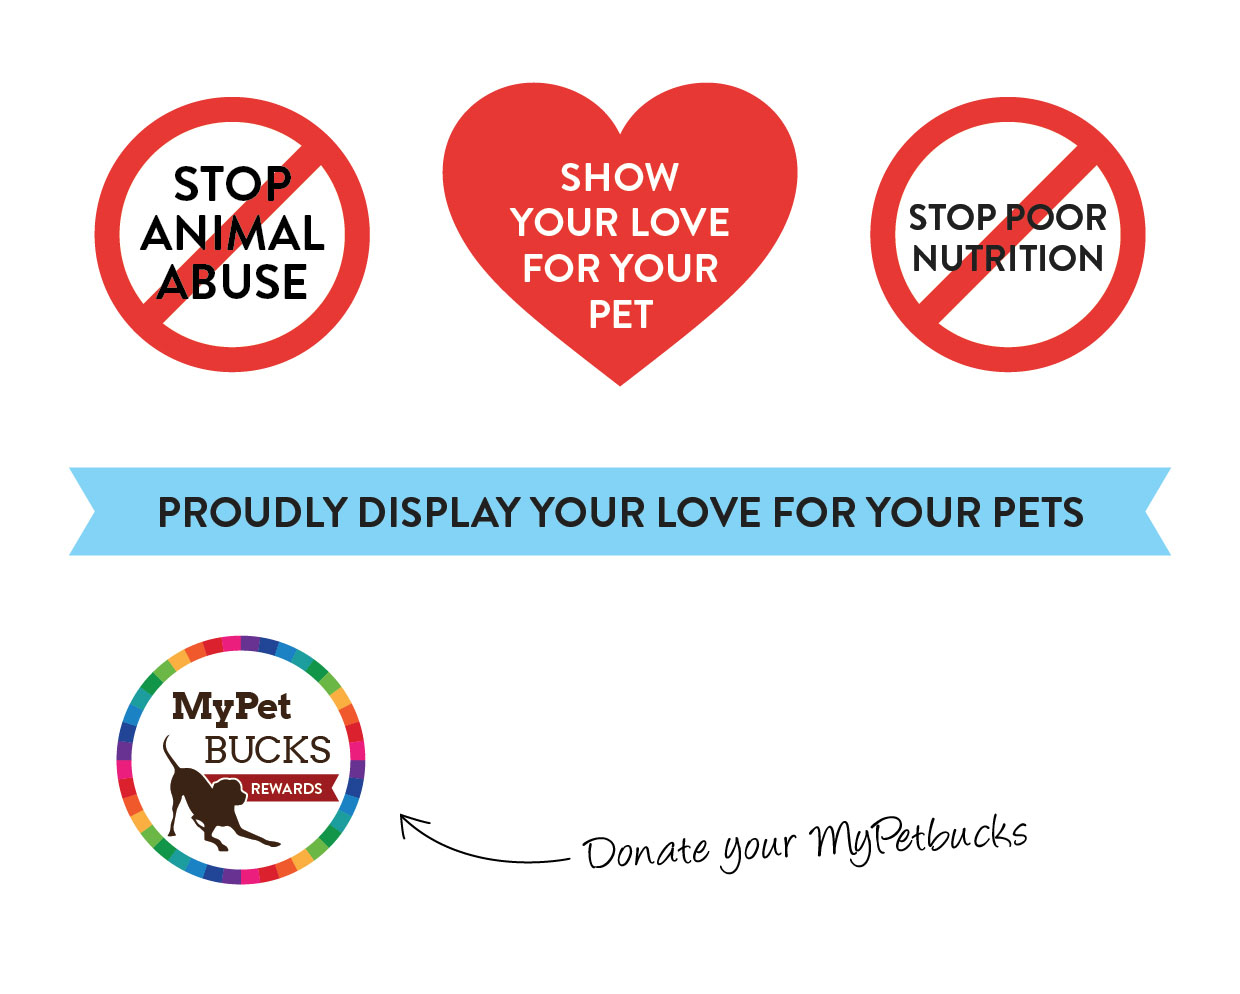 I heart MyPet campaign